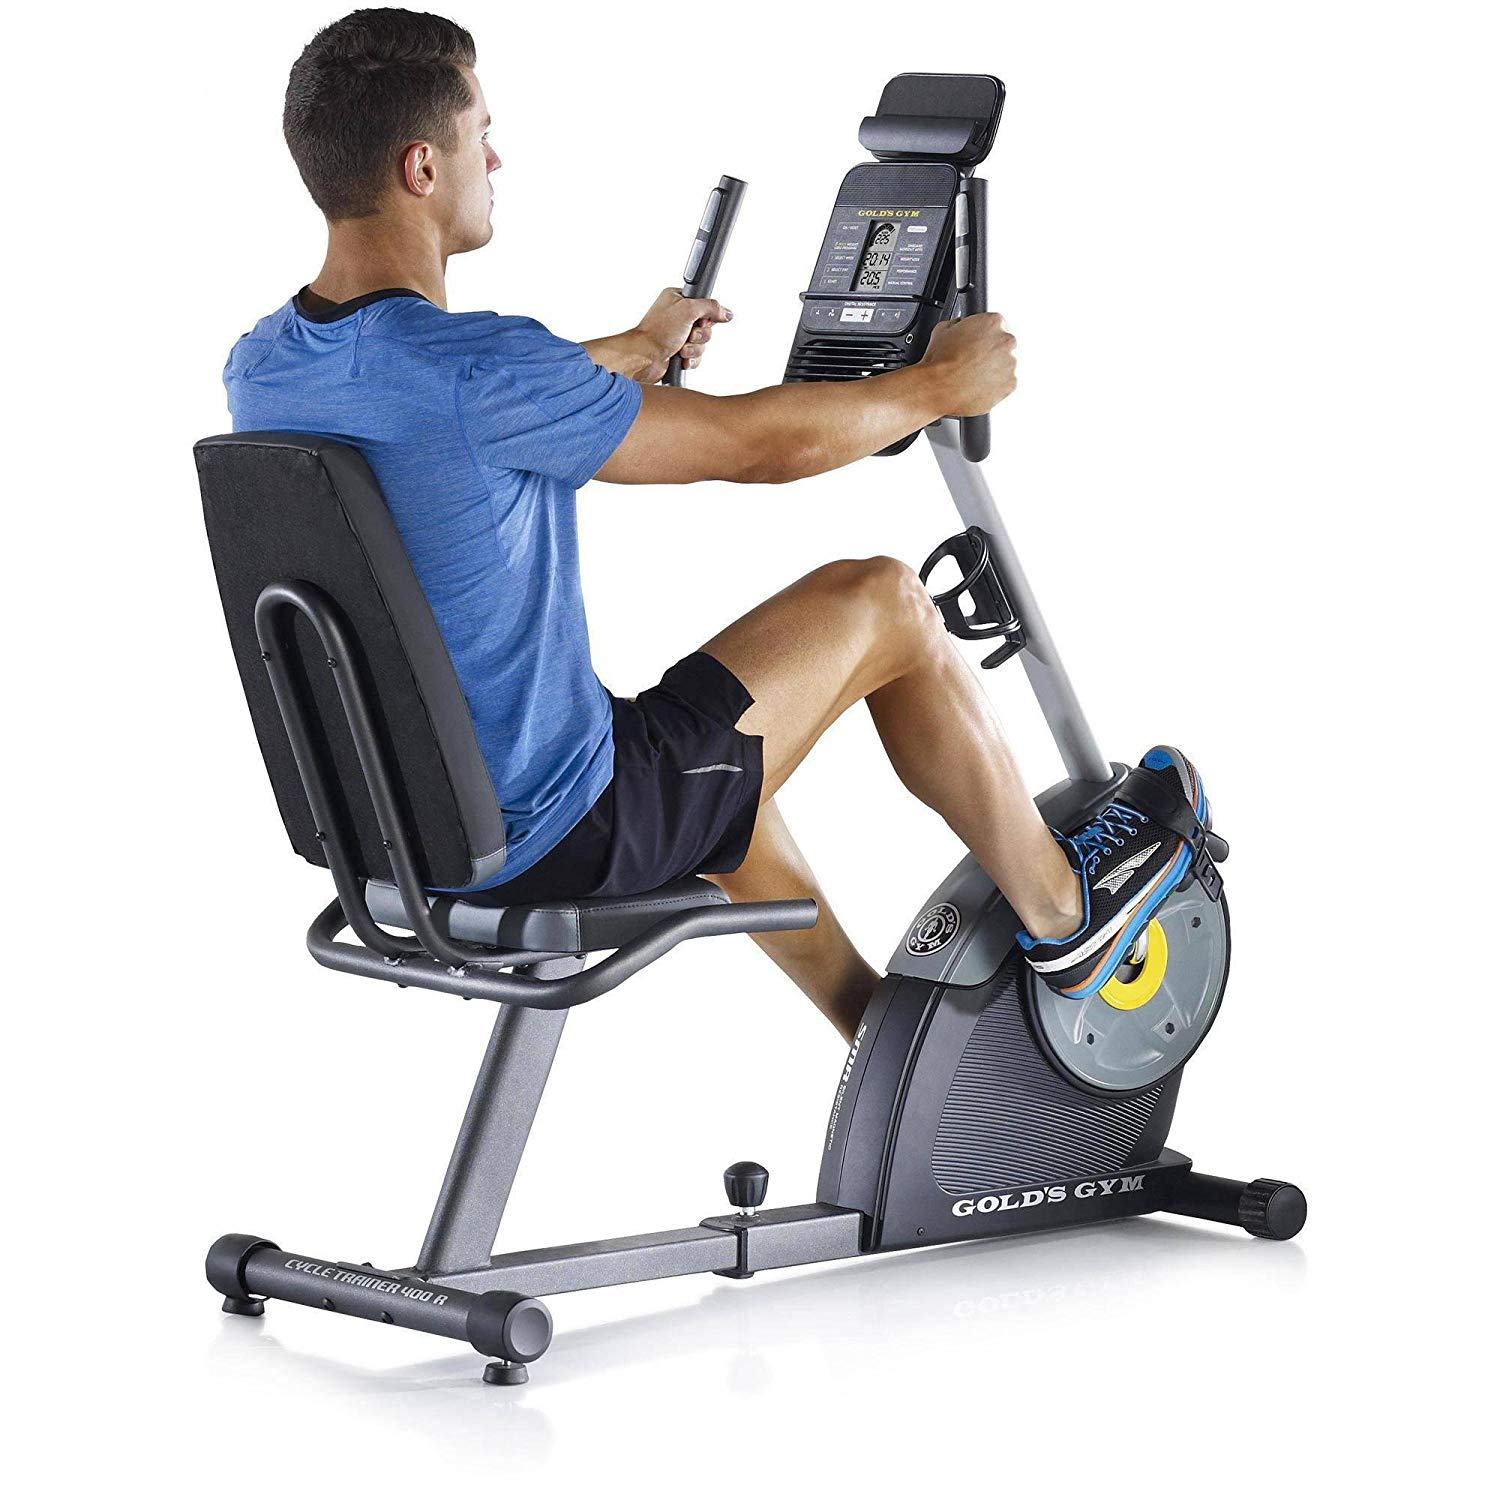 Gold's Gym Cycle Trainer 400R Exercise Recumbent Bike Tablet Holder